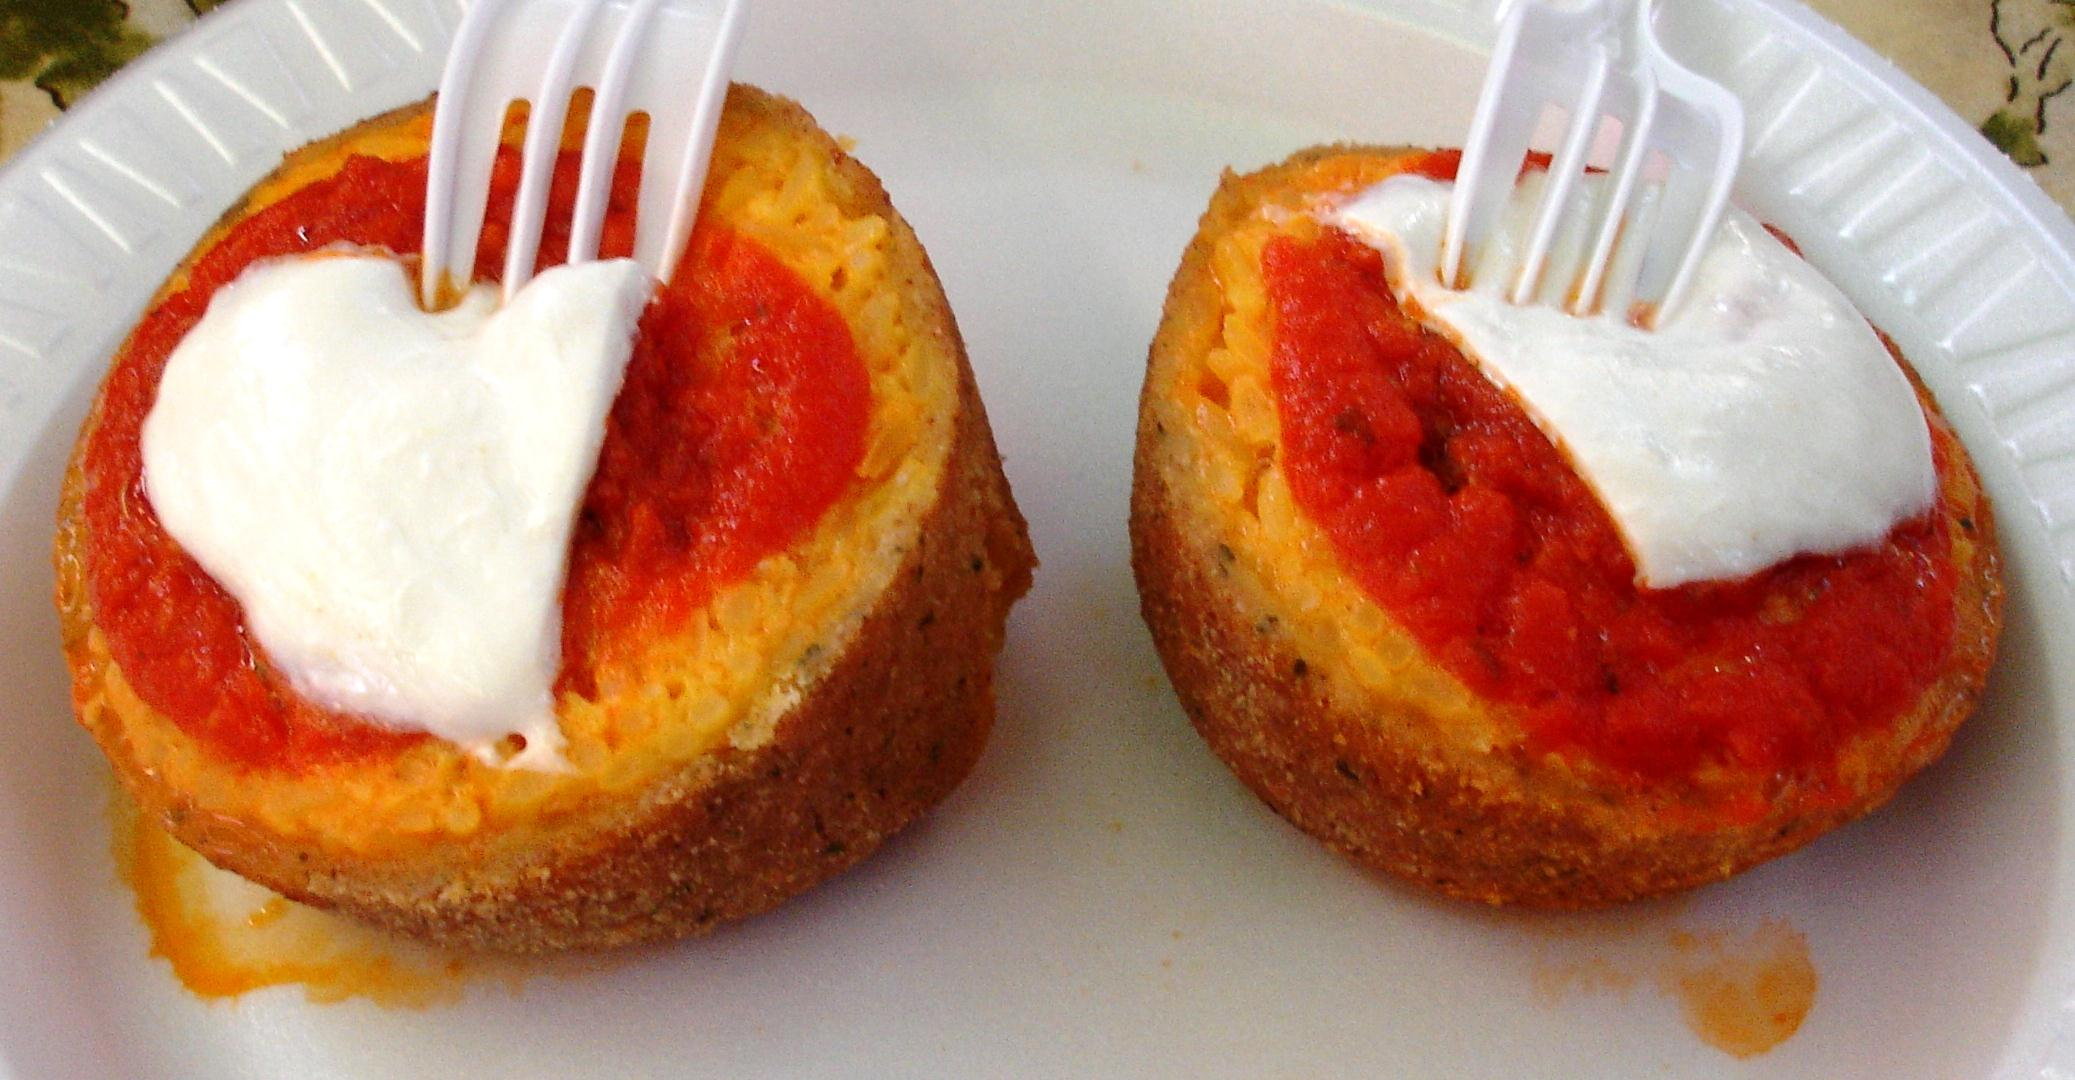 Arancini are fried rice balls, here garnished with tomato sauce and fresh mozzarella. They make a terrific snack.